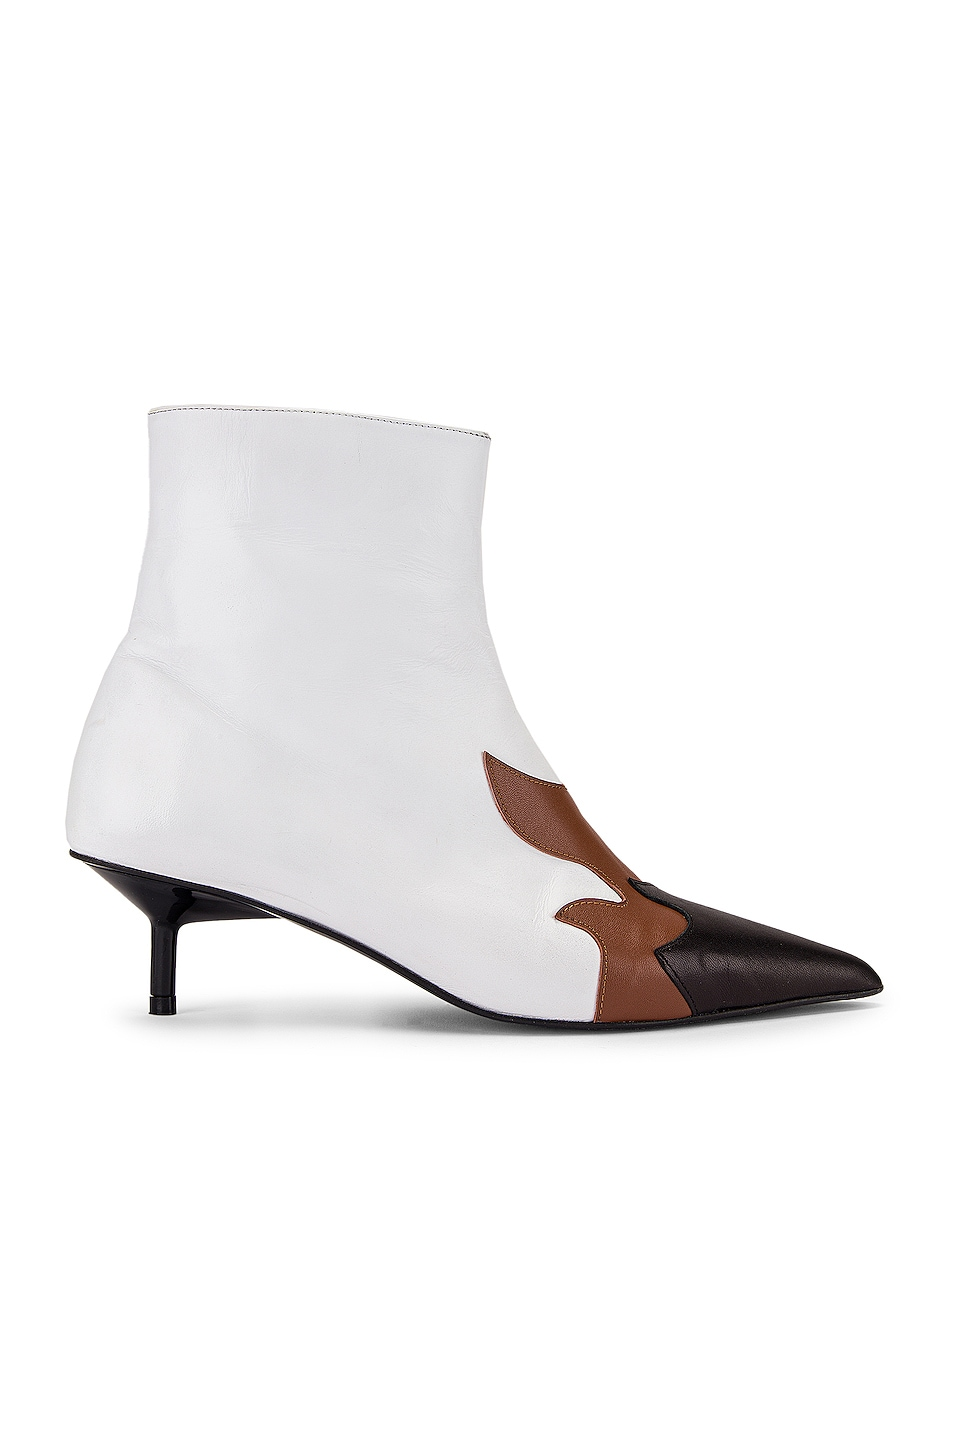 Image 1 of Marques ' Almeida Pointy Kitten Heel Flame Boot in White, Brown & Black